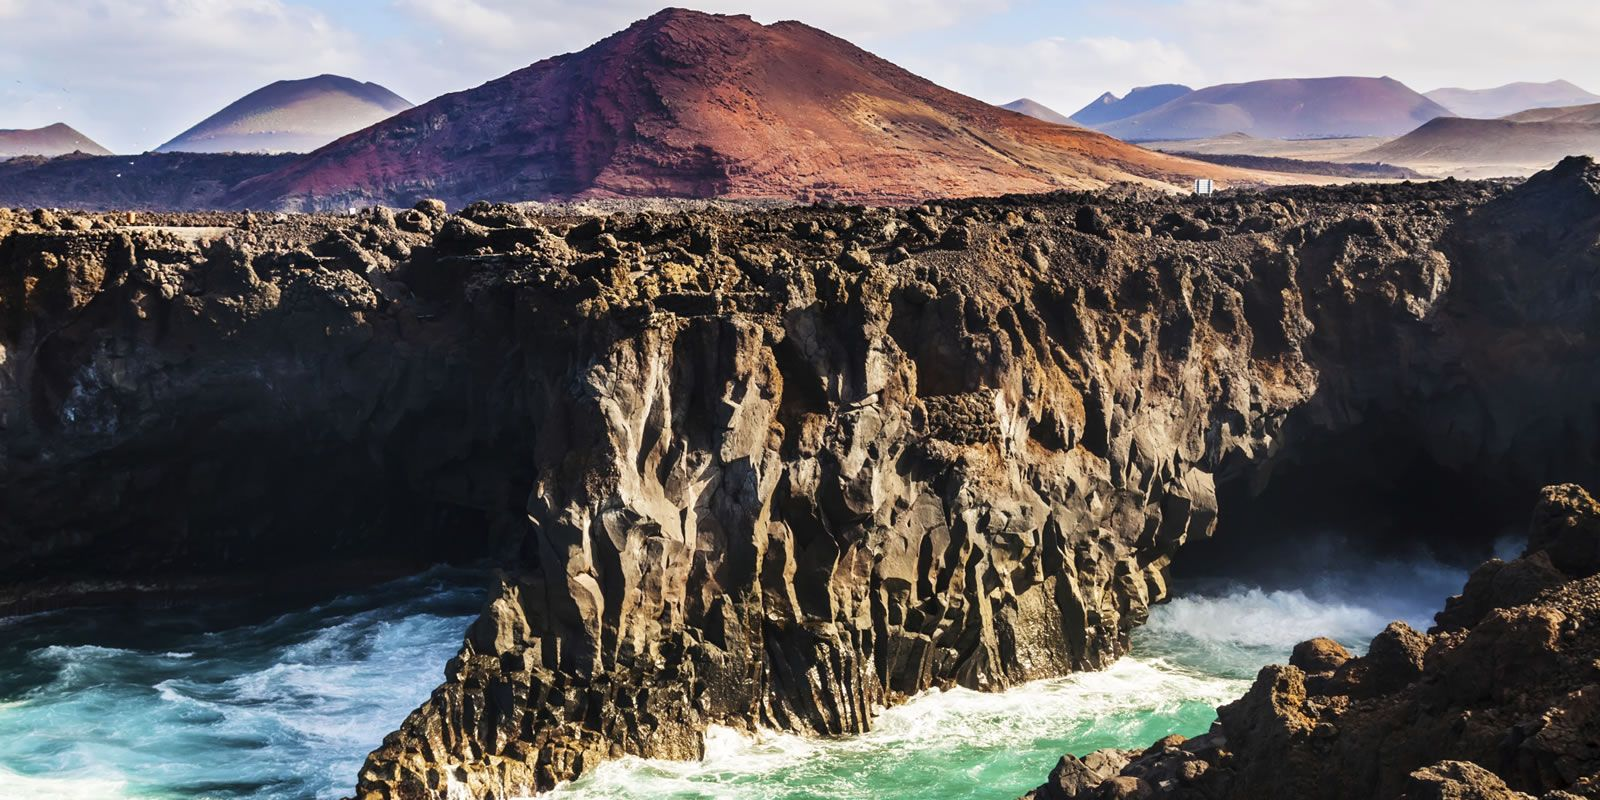 Buy online ferry tickets to or from Lanzarote, specials offers